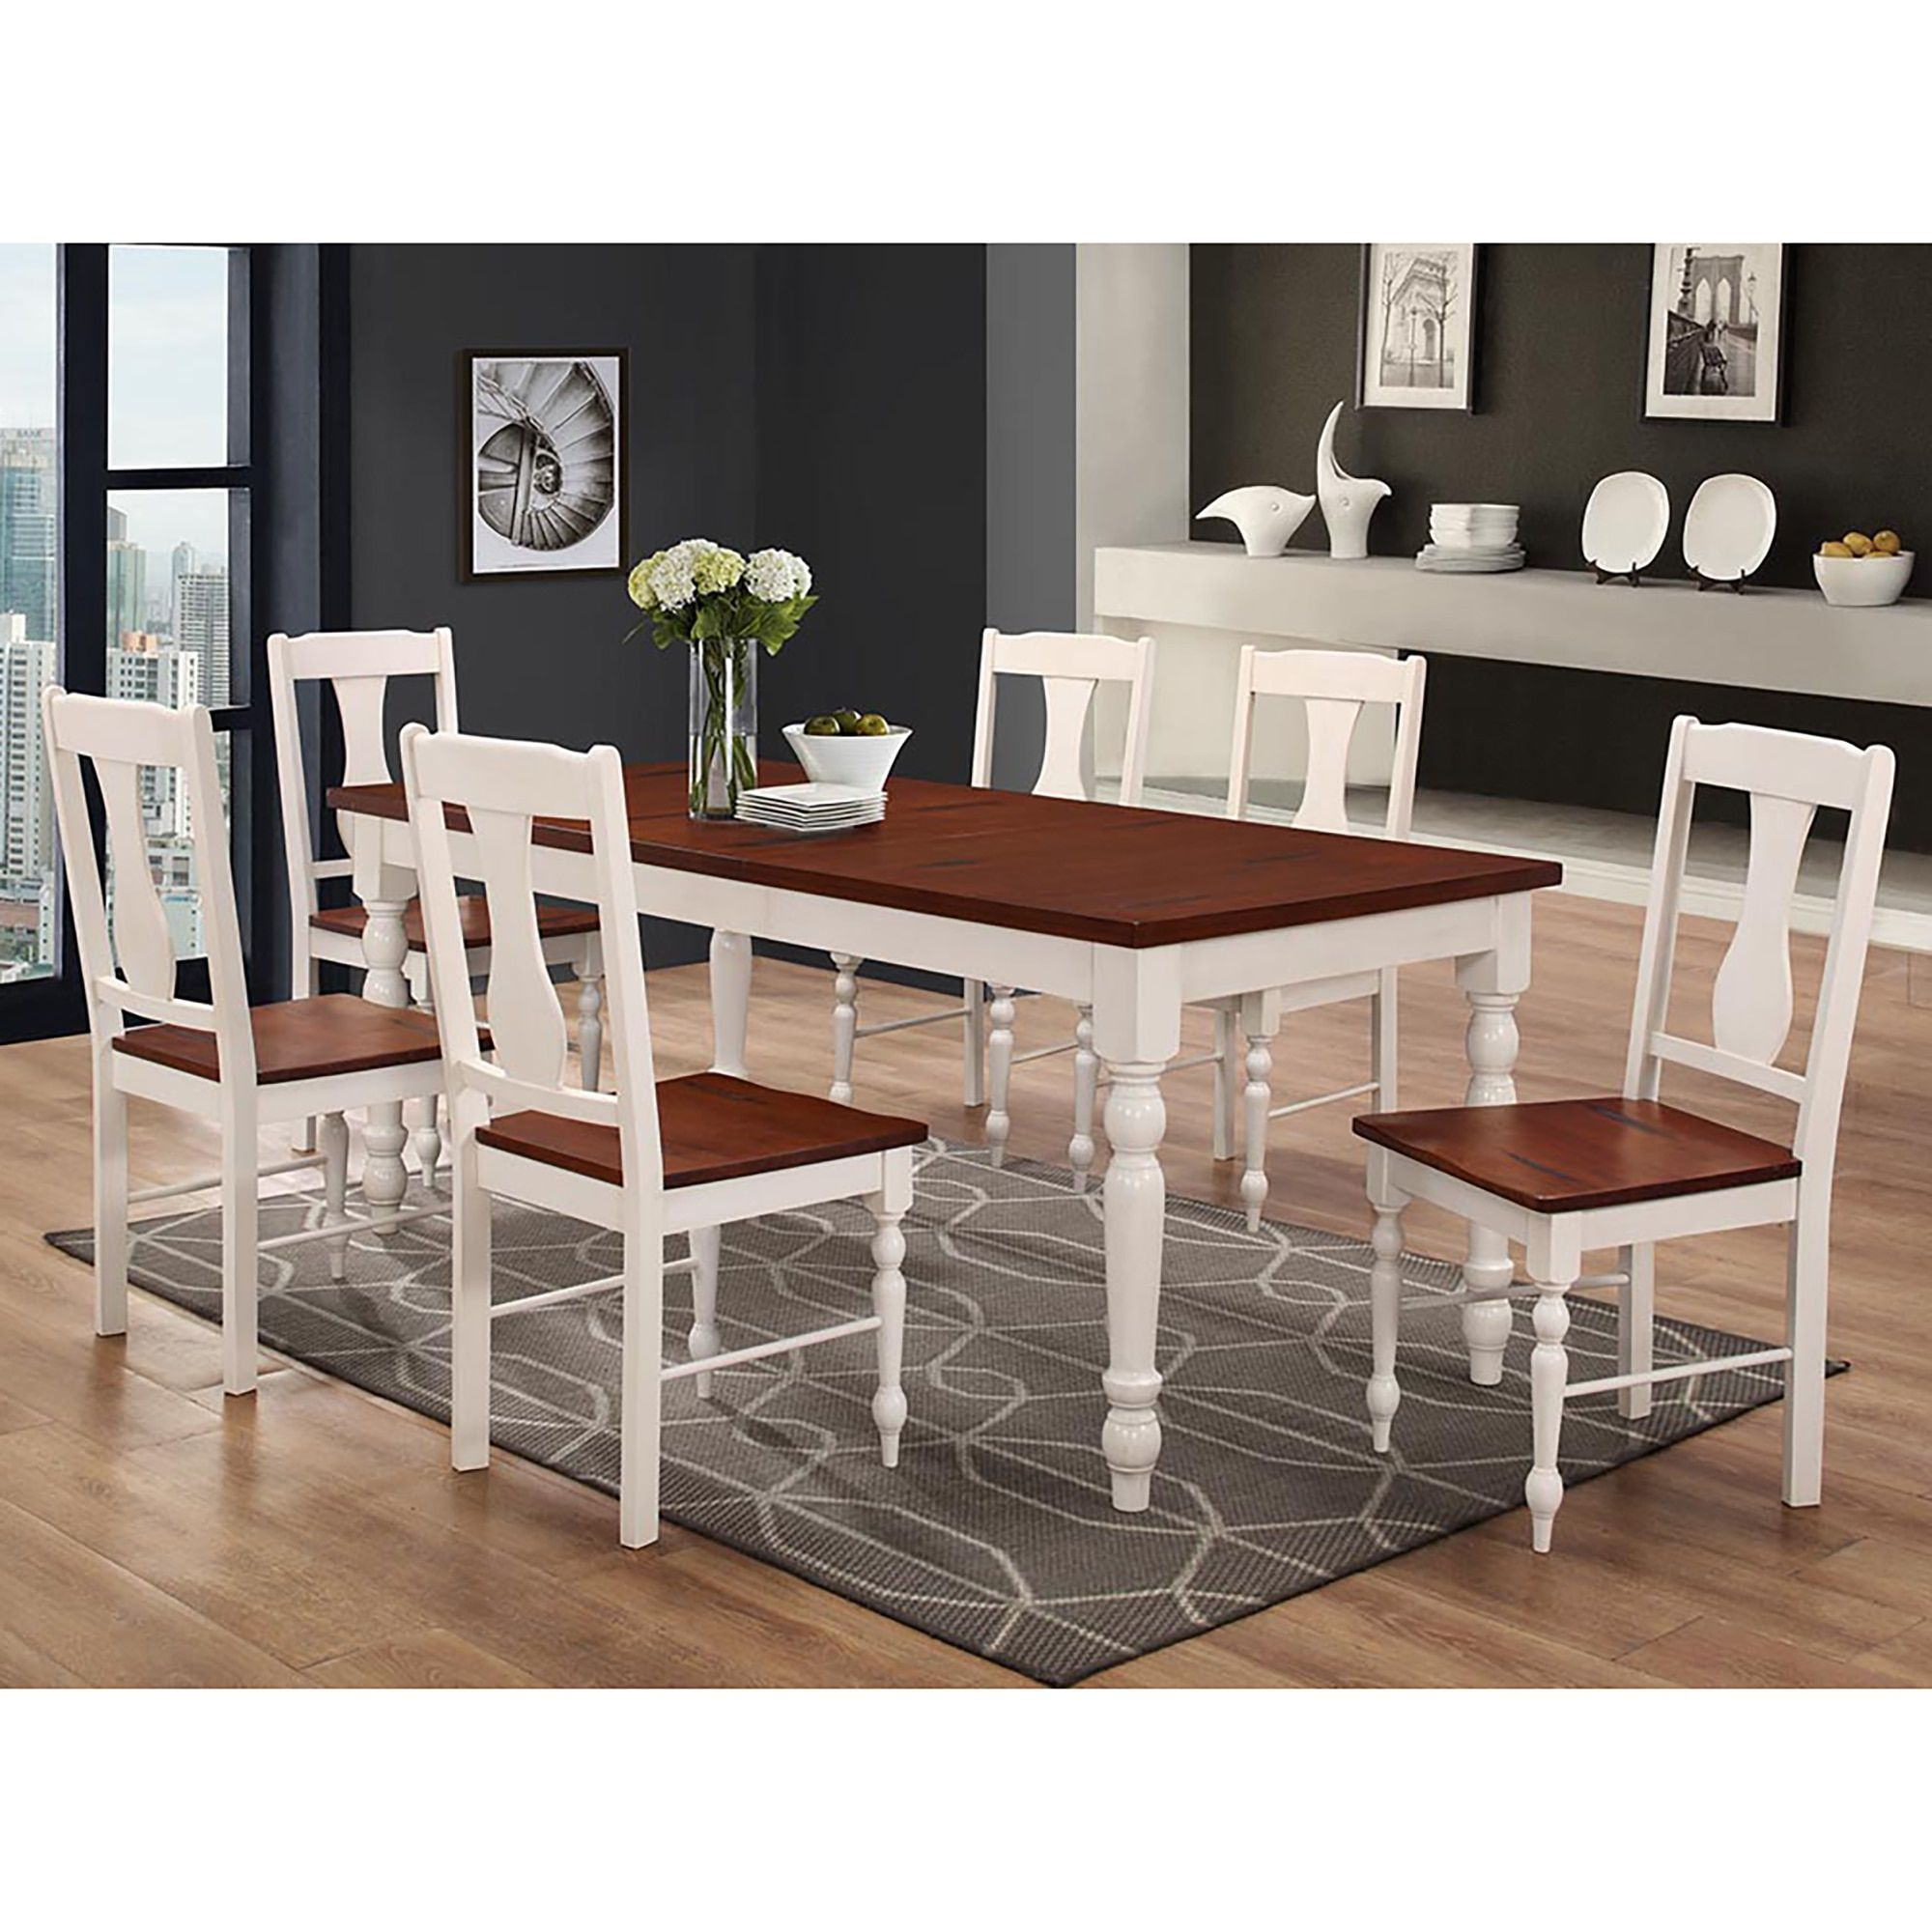 7Piece Two Toned Solid Wood Dining Set Brown Size 7Piece Sets Inspiration Dining Room Sets Online Inspiration Design